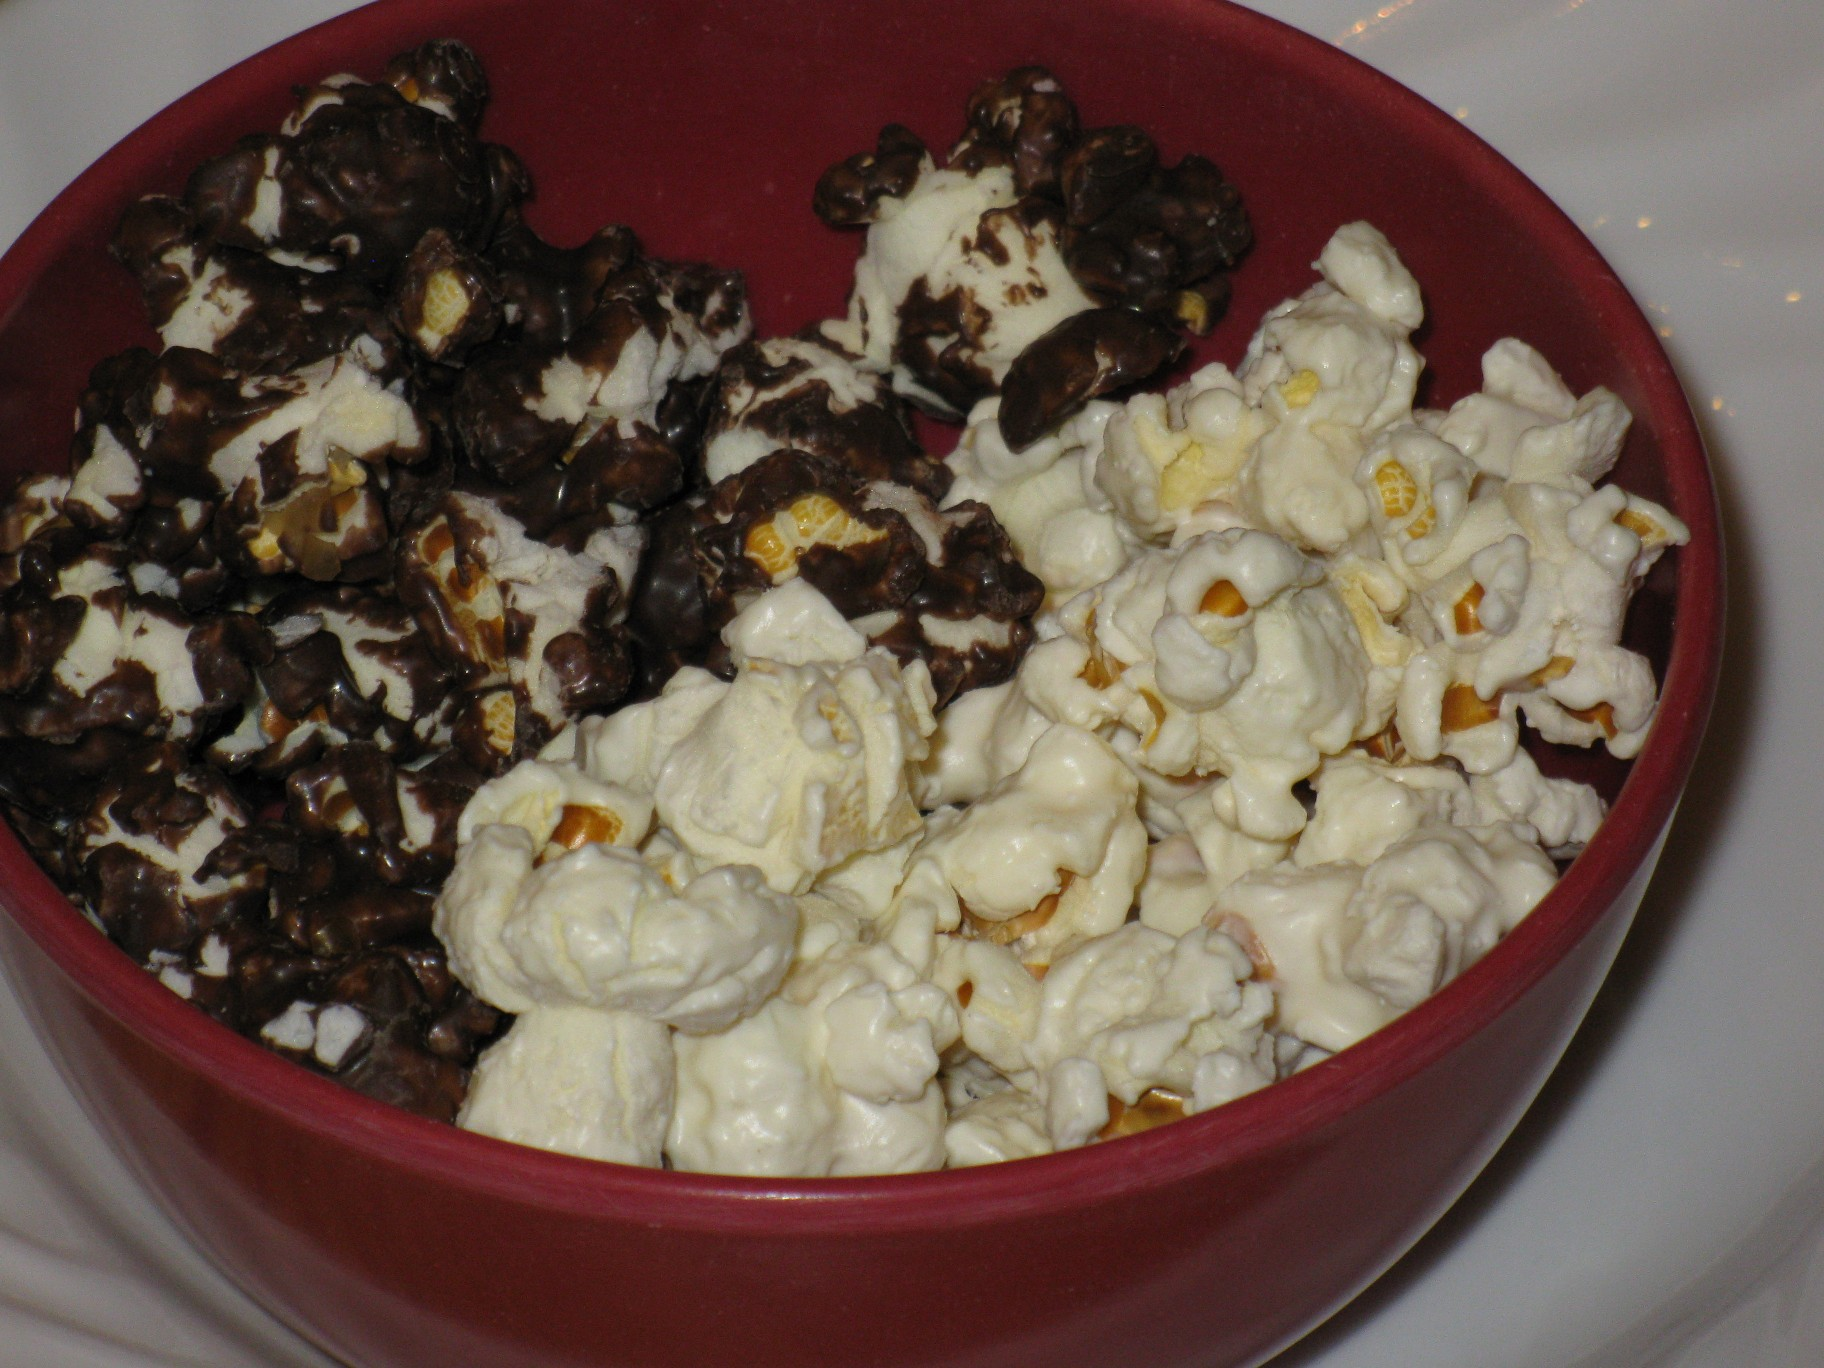 Reindeer or snowman poop tasty kitchen a happy recipe community forumfinder Choice Image